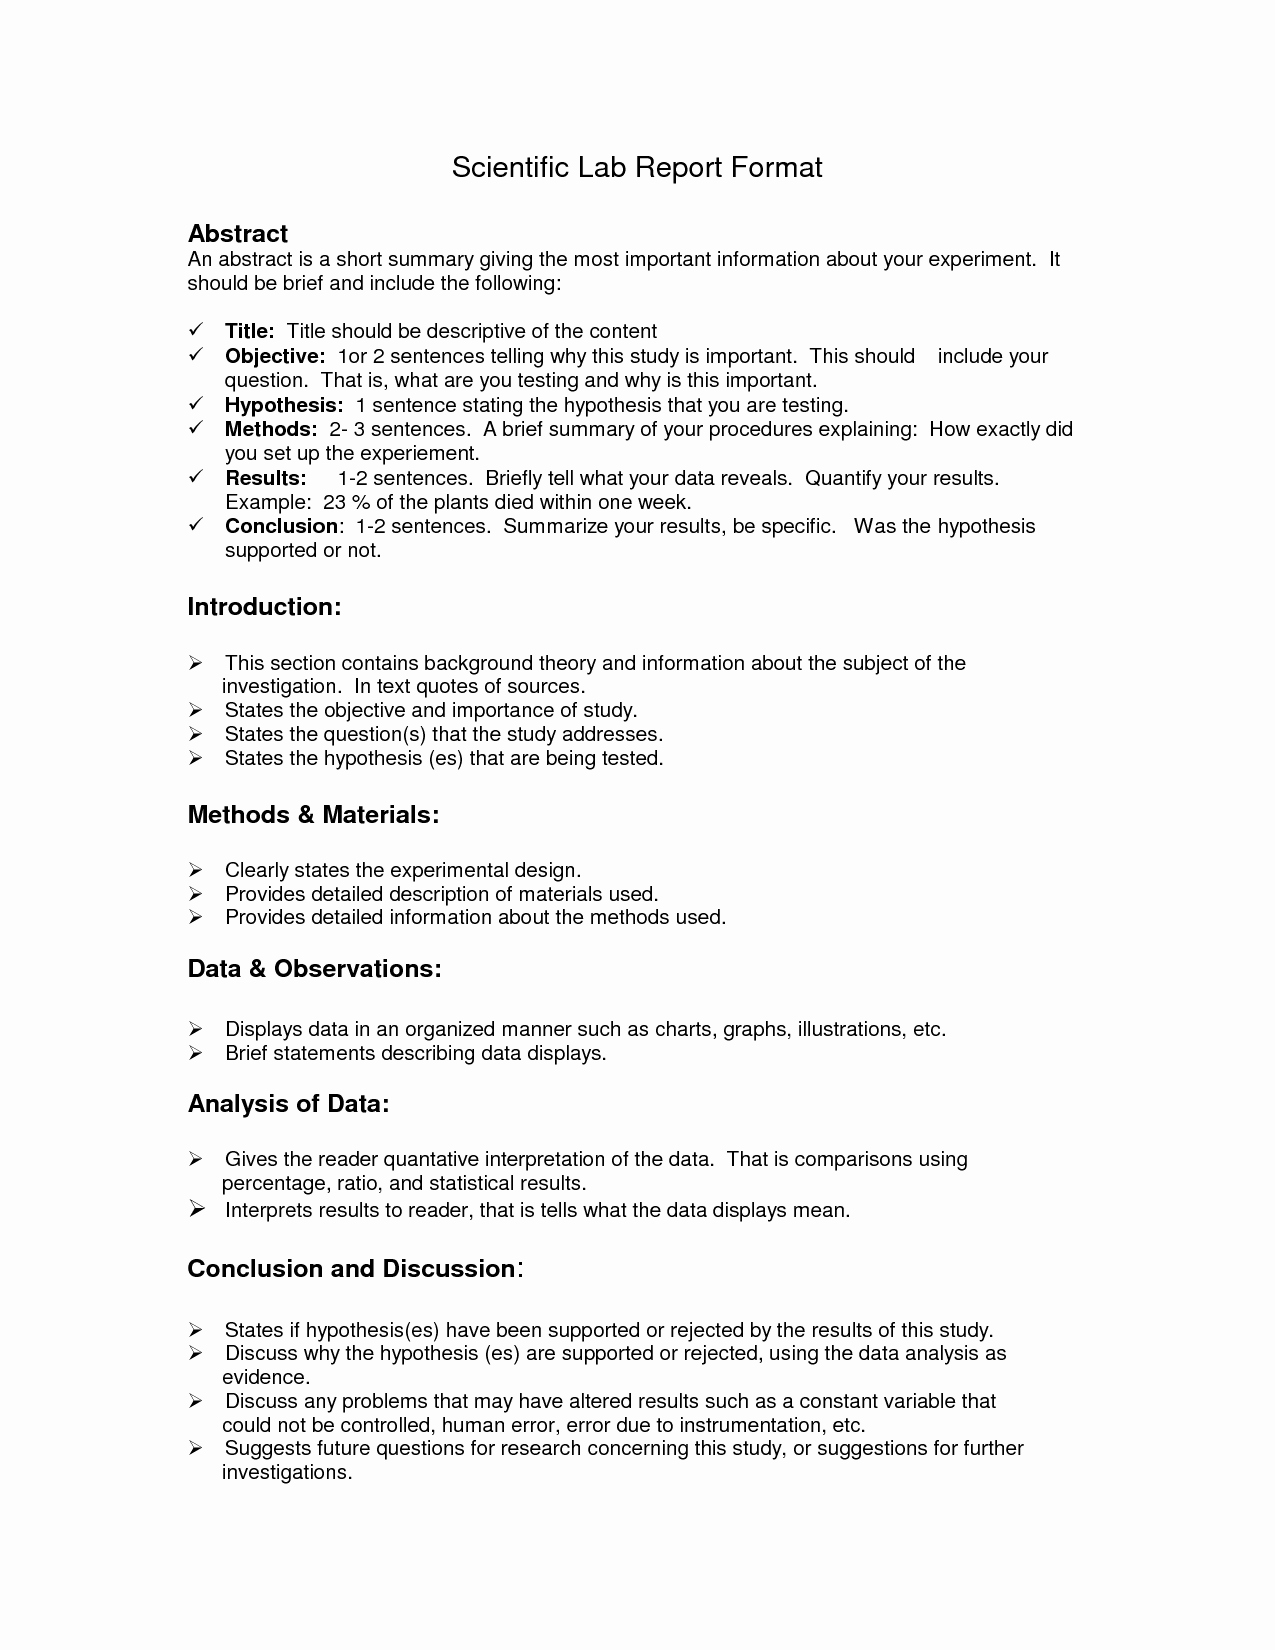 Scientific Lab Report Template Best Of Lab Report format Doc